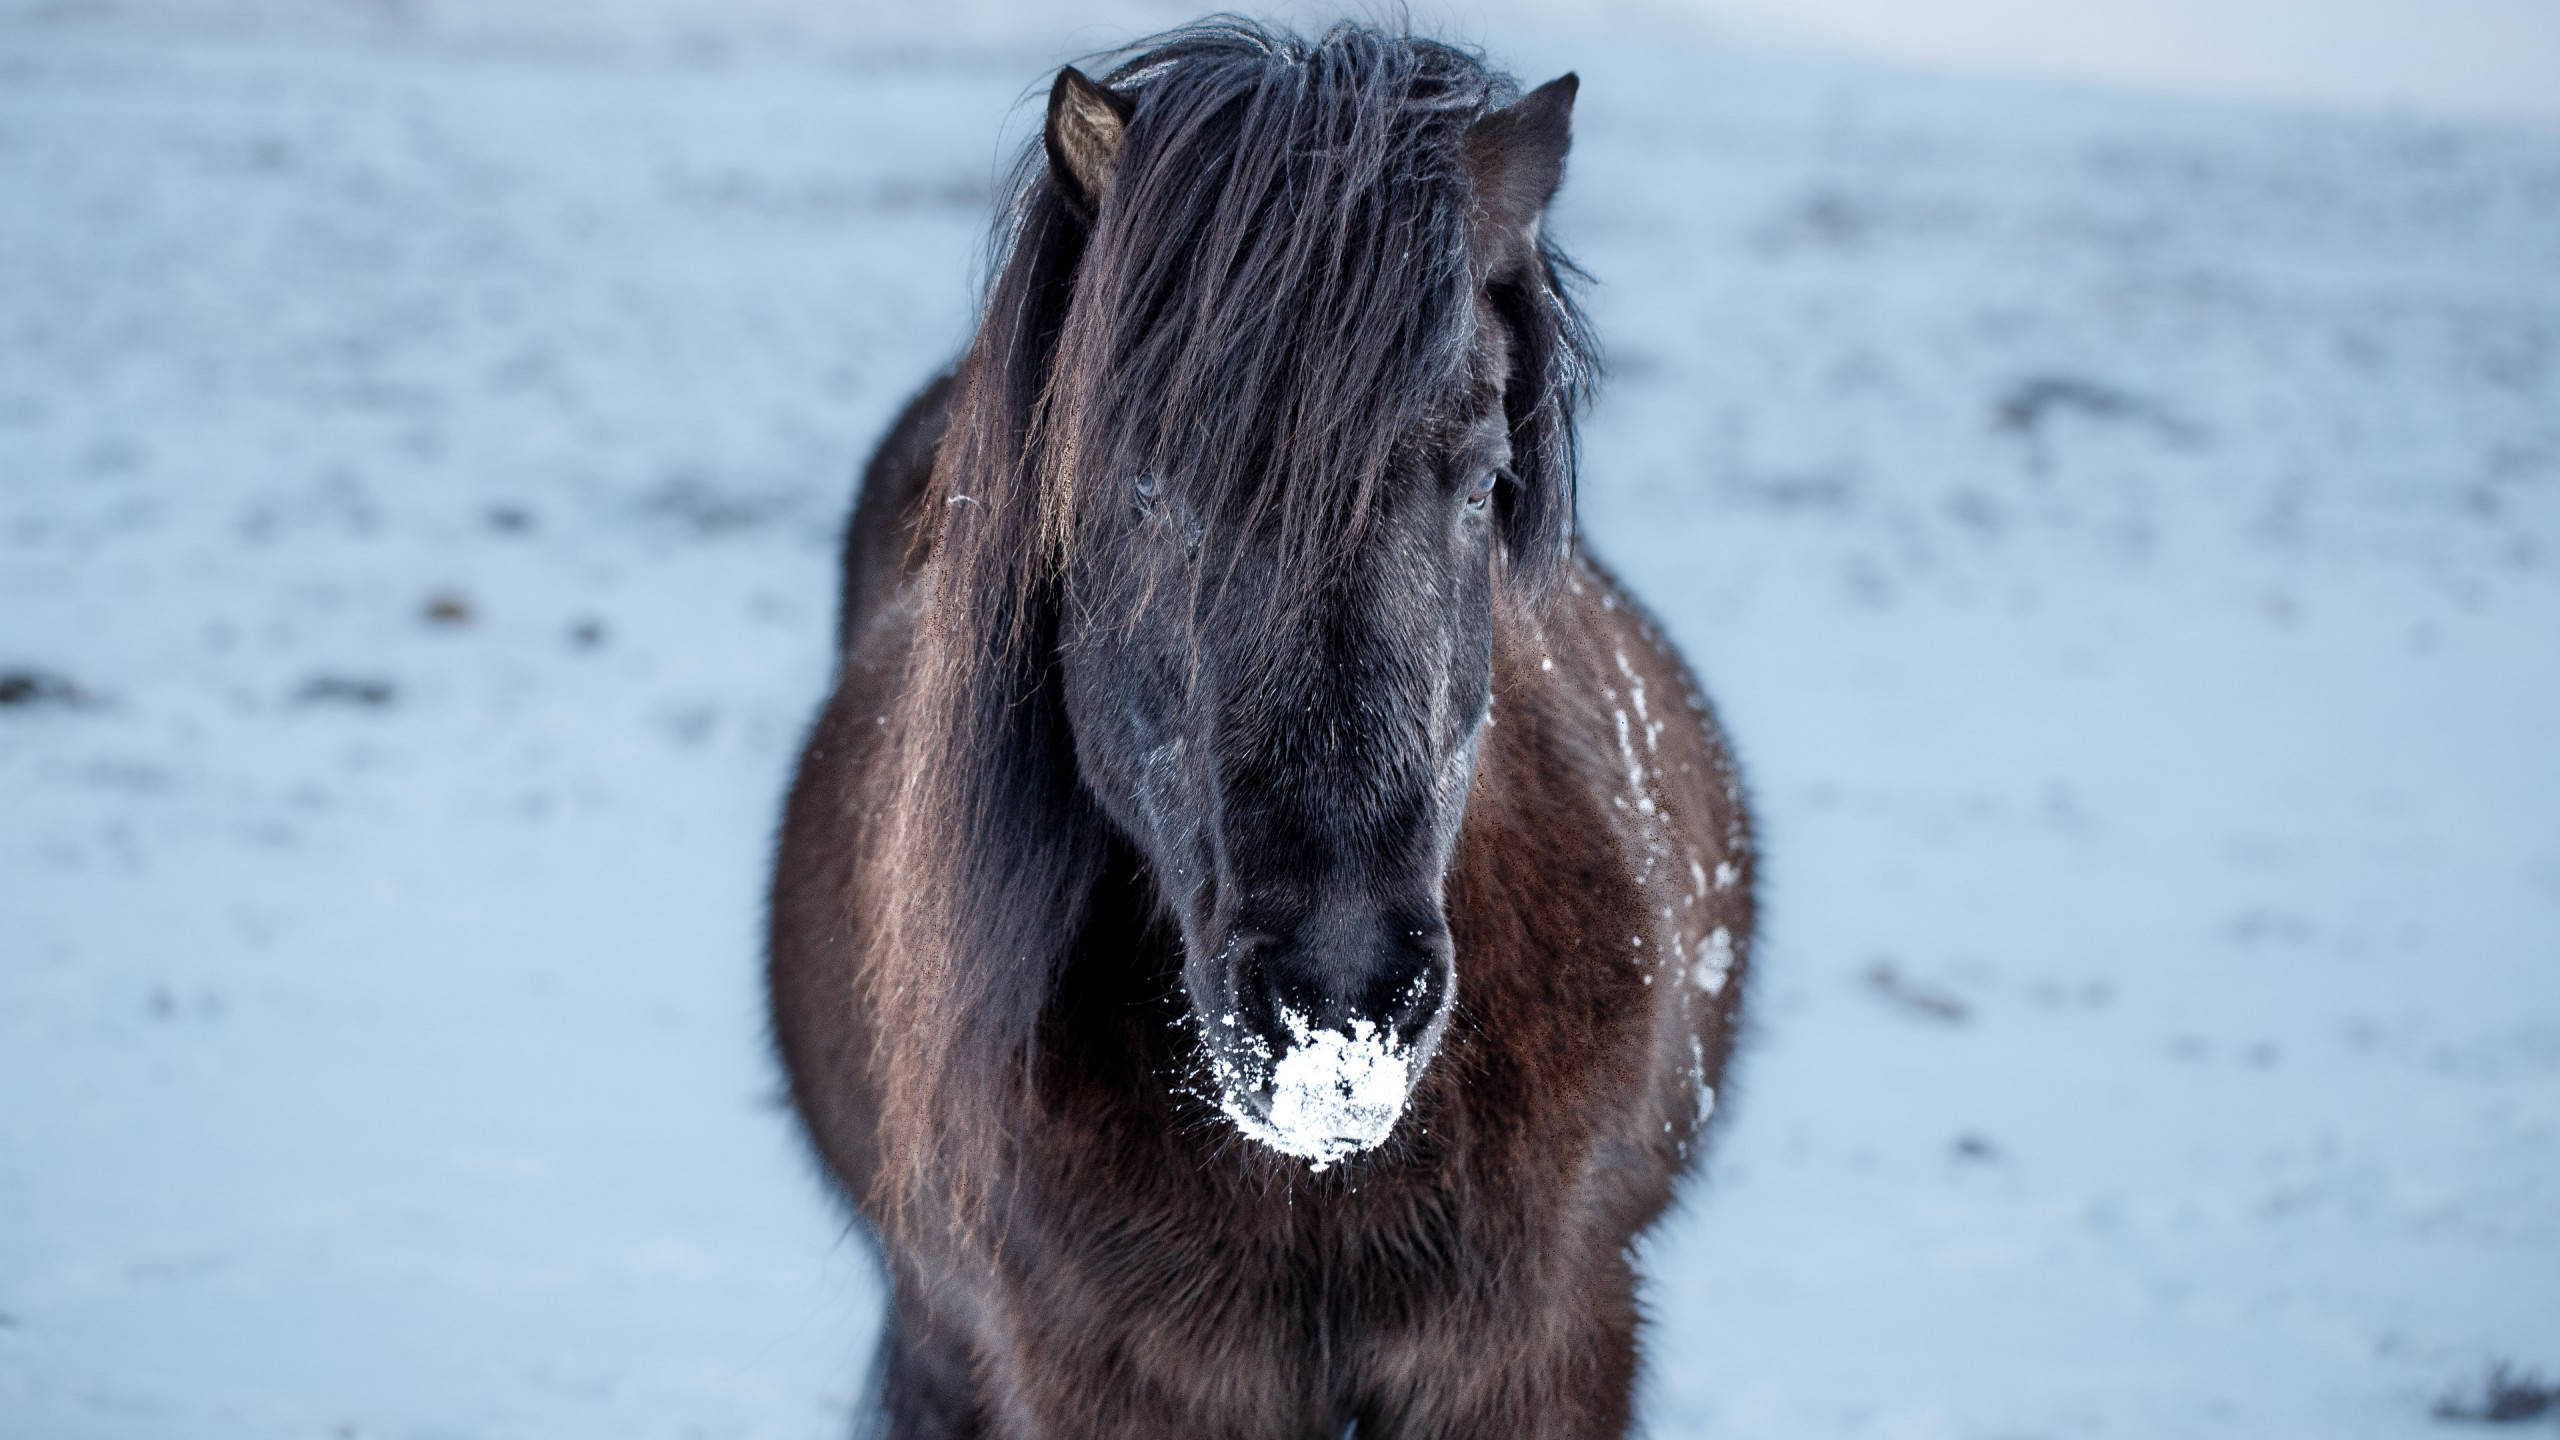 Icelandic horse | 2560x1440 wallpaper